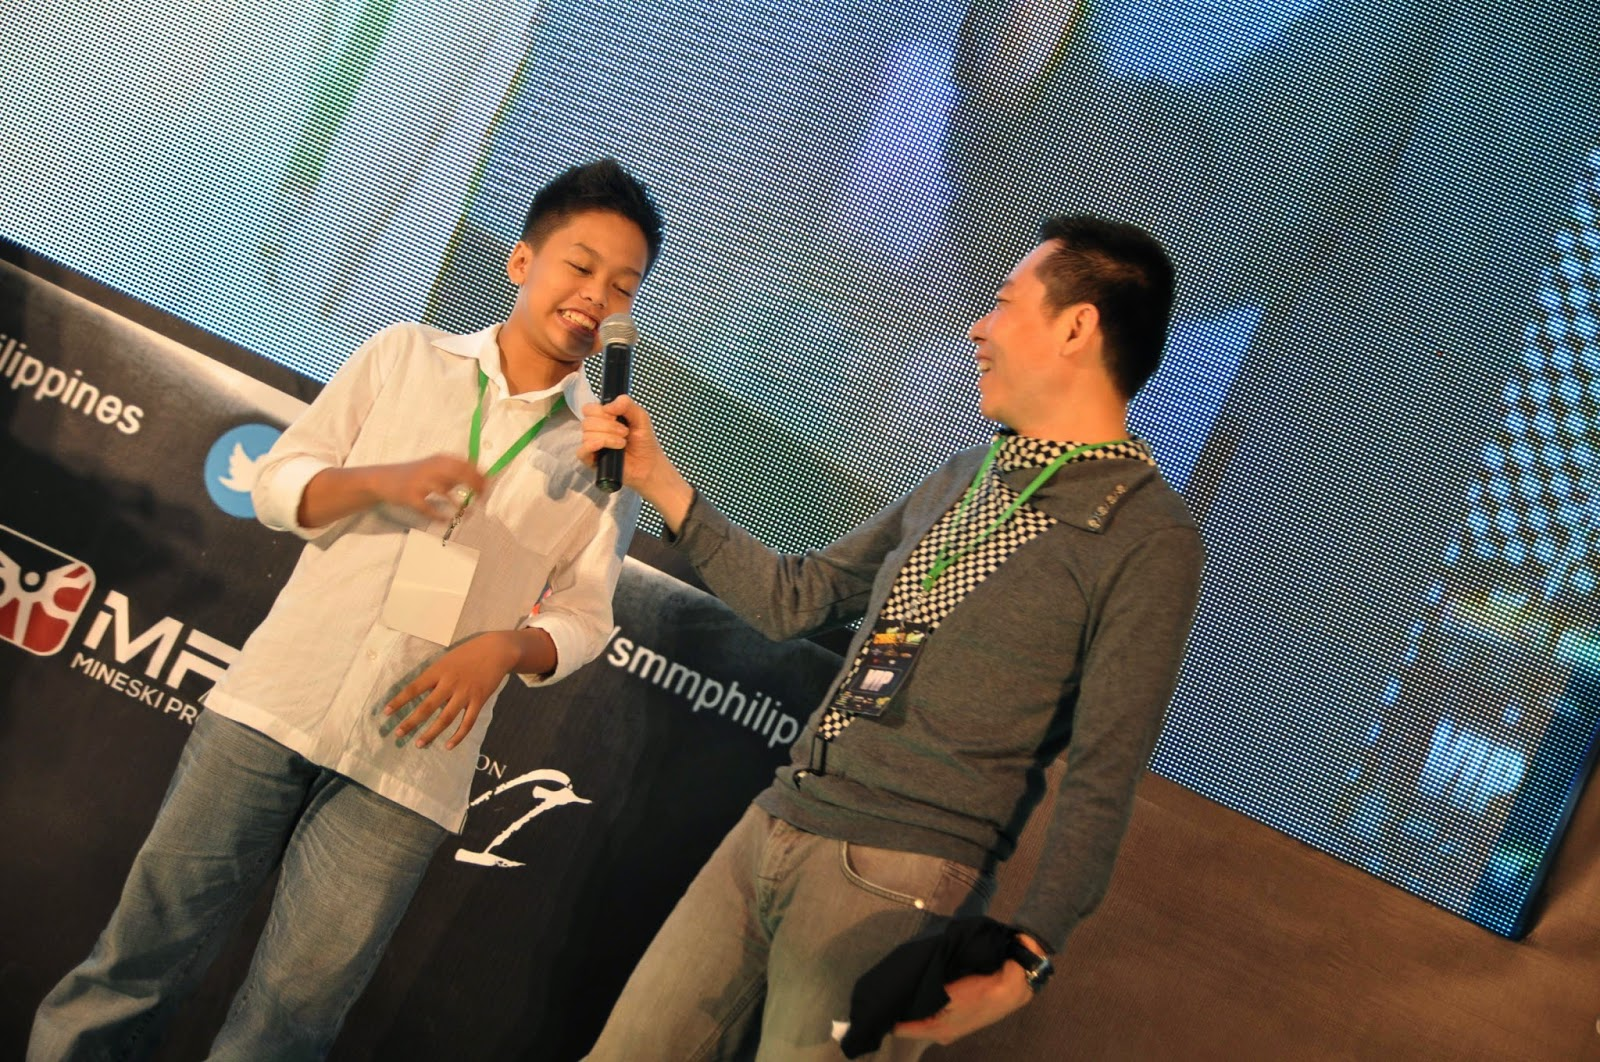 Dr. Ricky Lim and AK